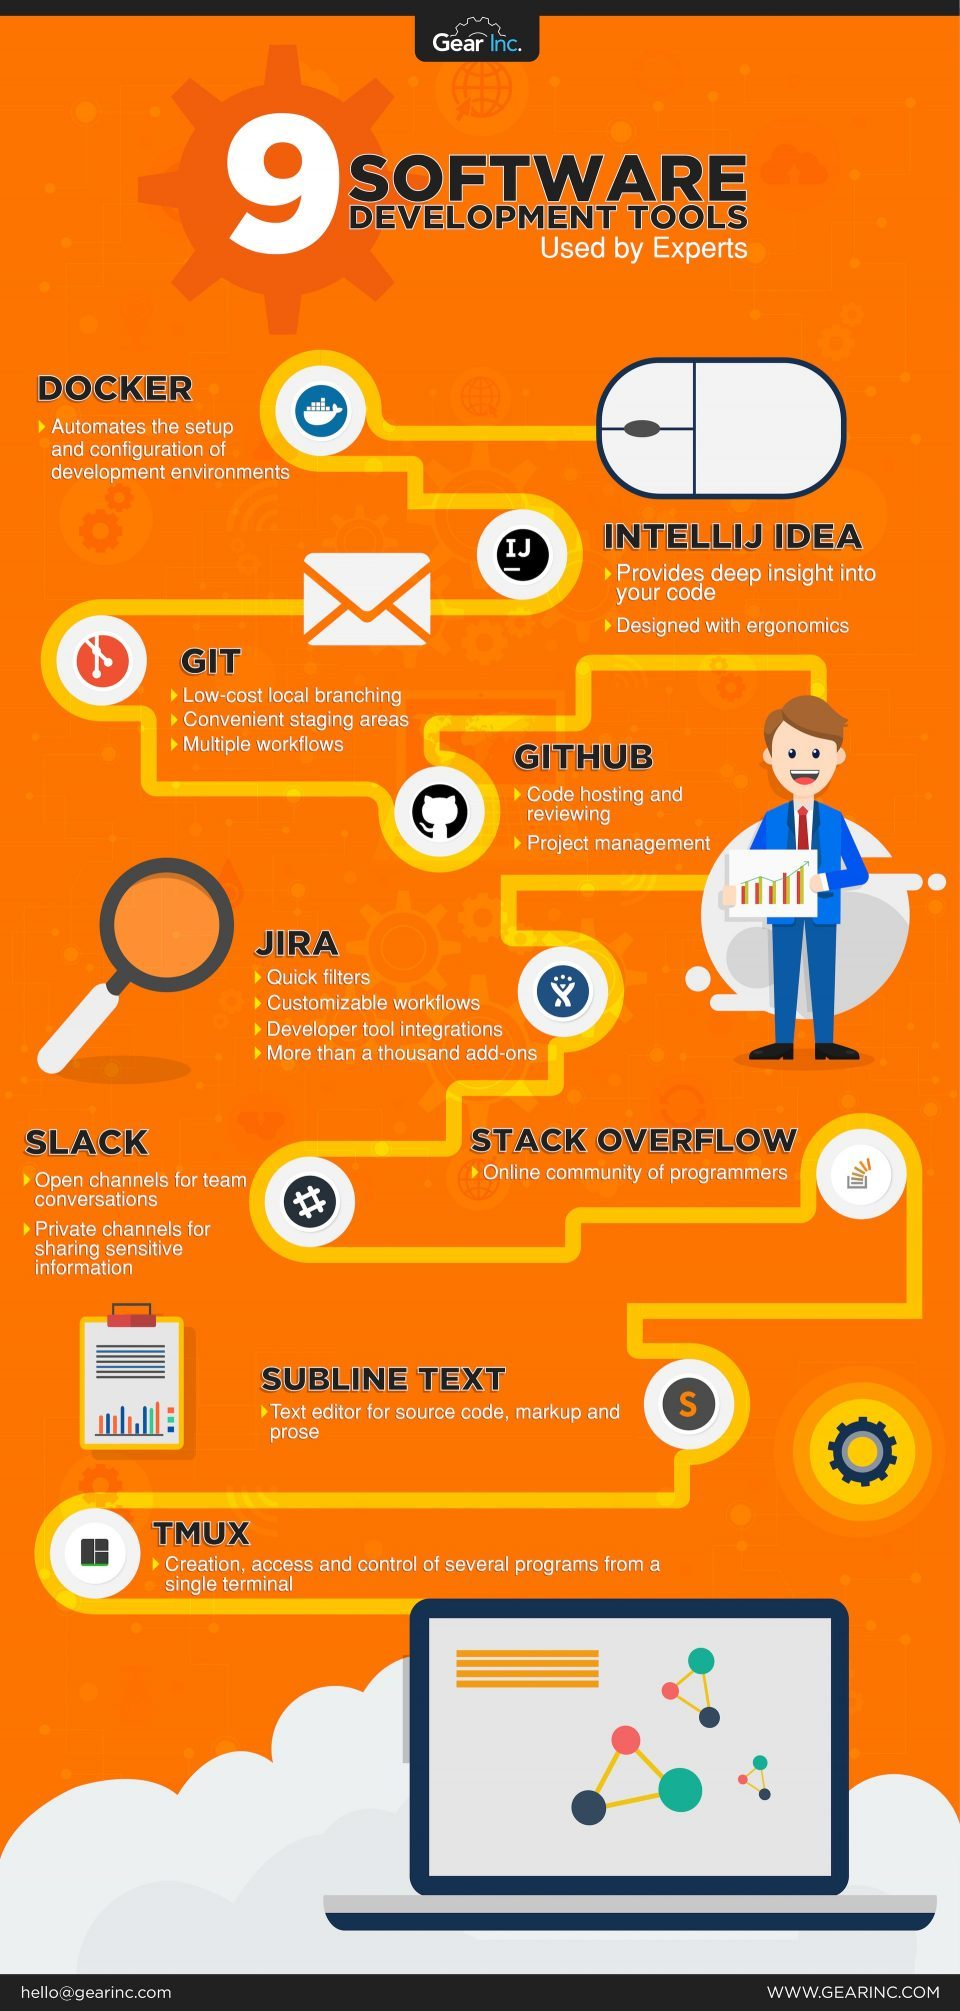 9 Software Development Tools Used by Experts Infographic - e